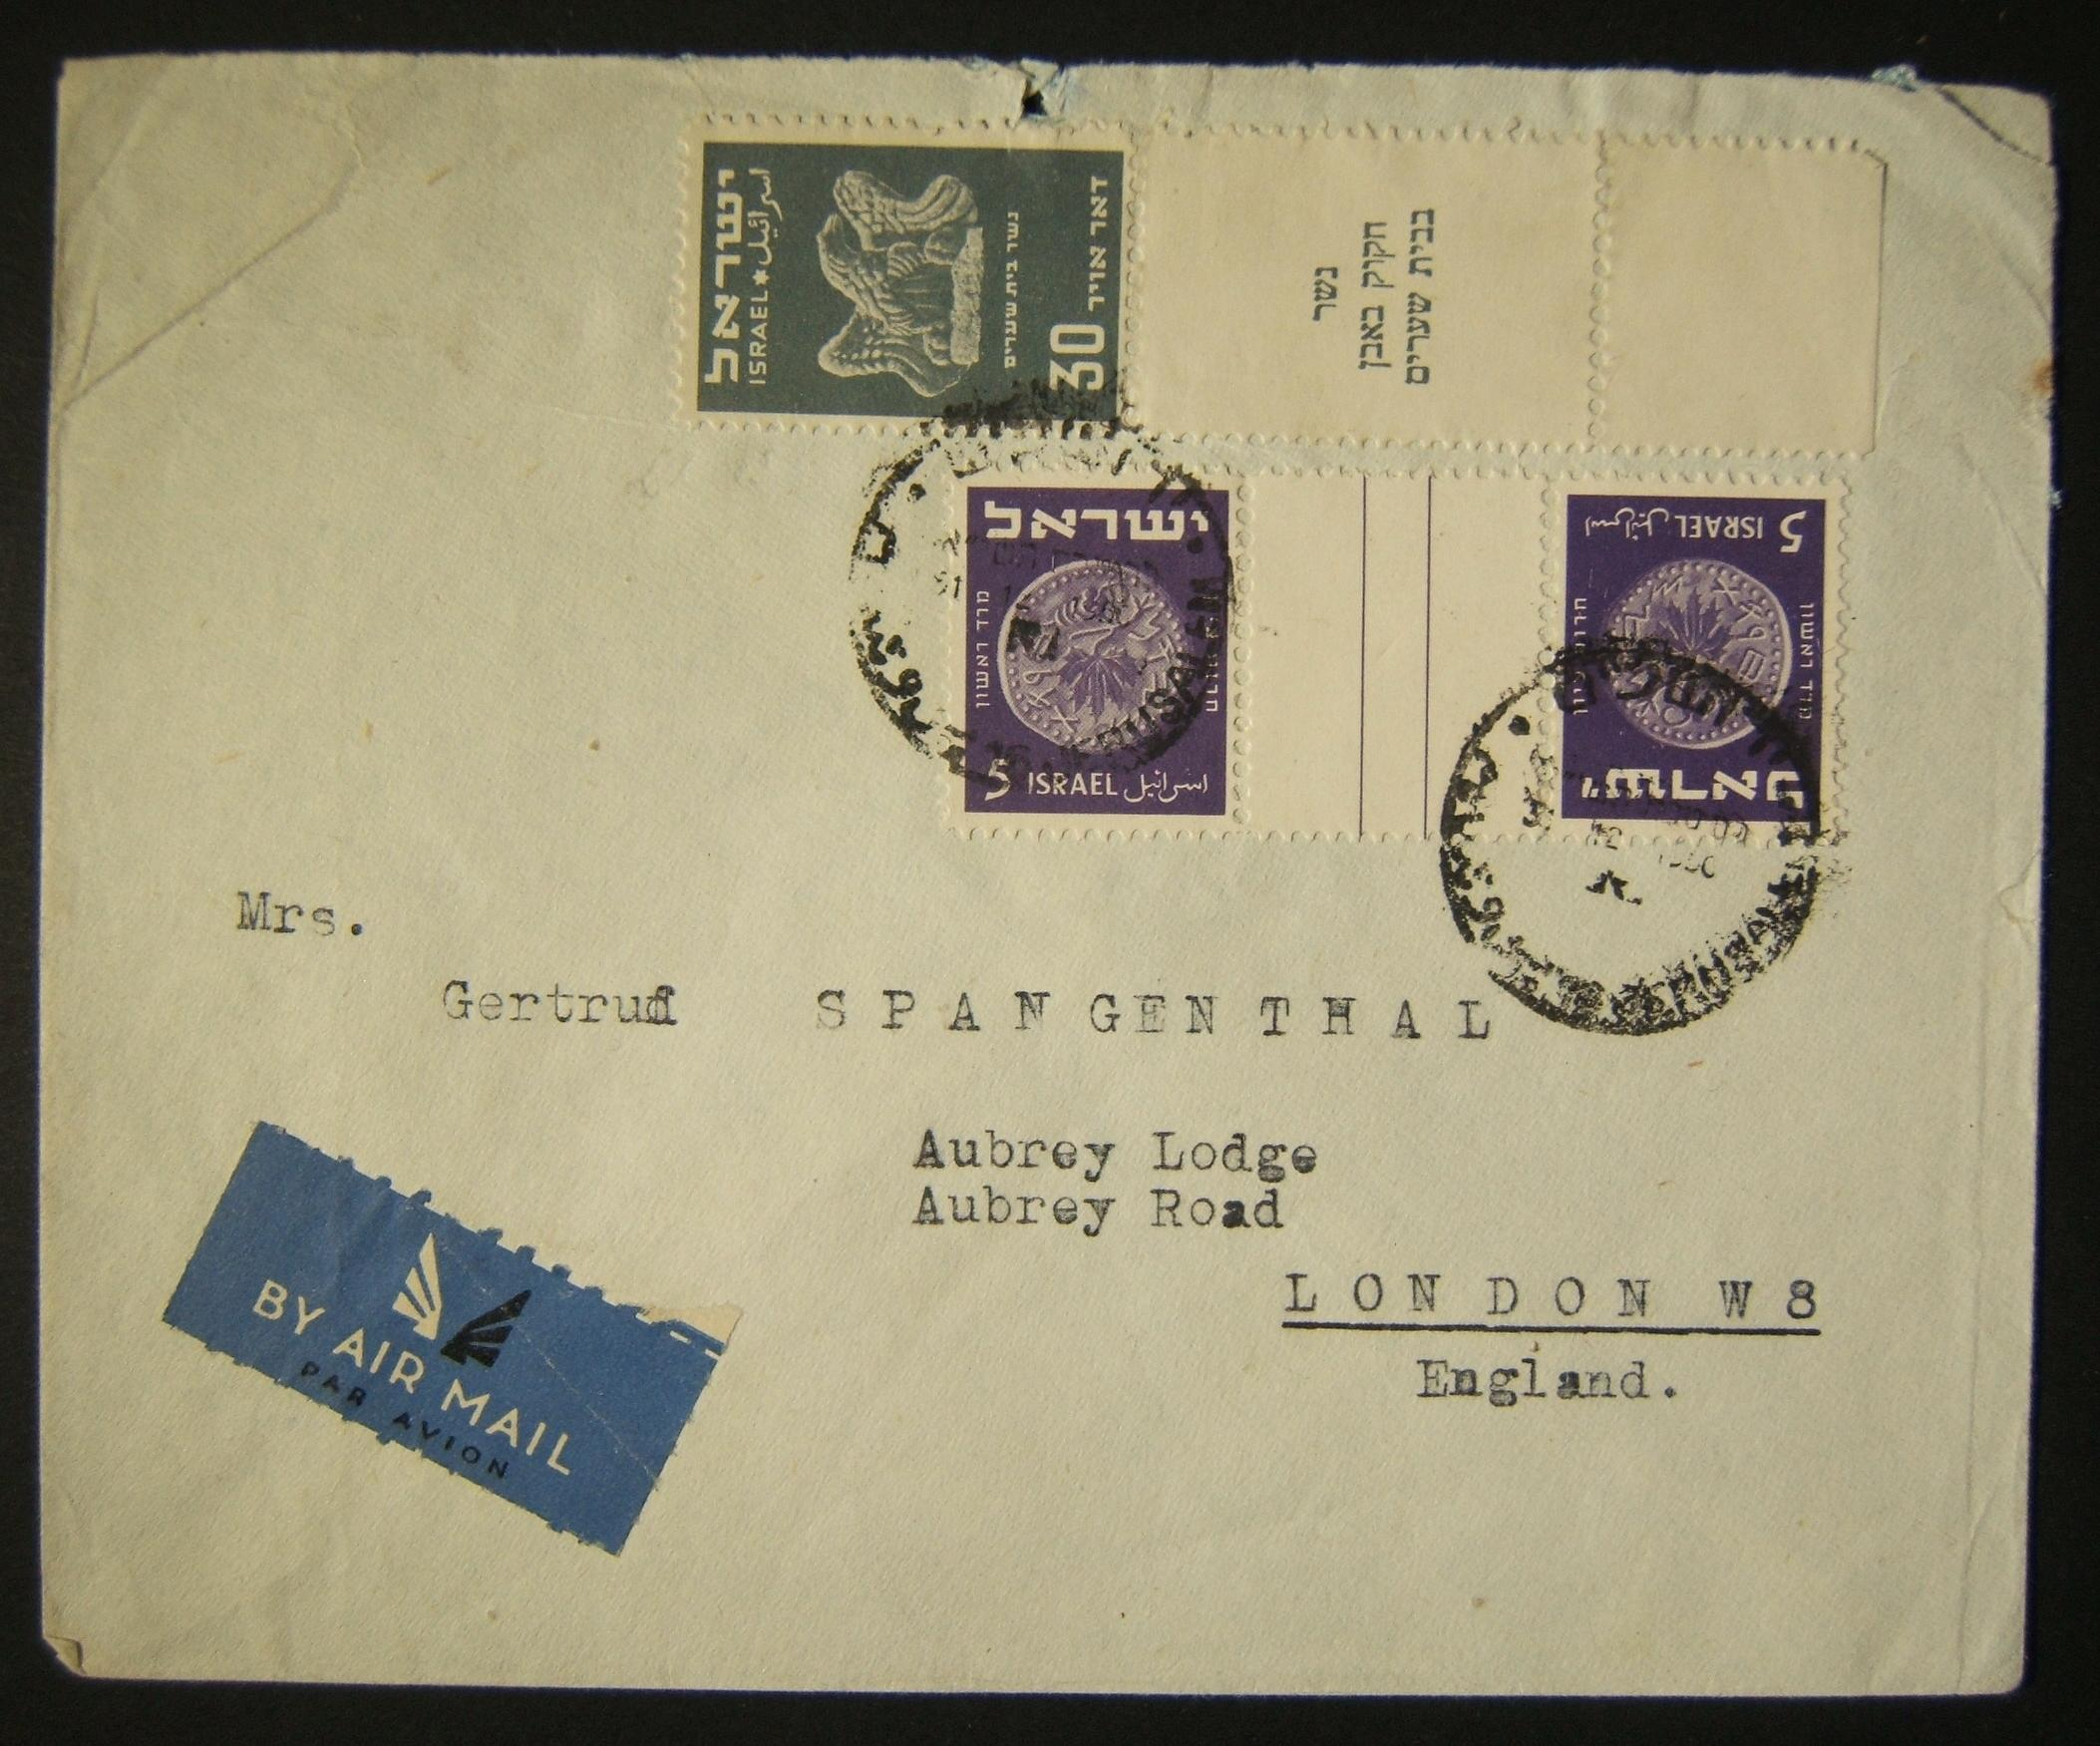 1950 1st airmail / PO's, rates & routes: 31-12-1950 ex Jewish Agency for Palestine stationary as airmail cover ex JERUSALEM to LONDON franked 40pr at the FA-2a period rate to Europ